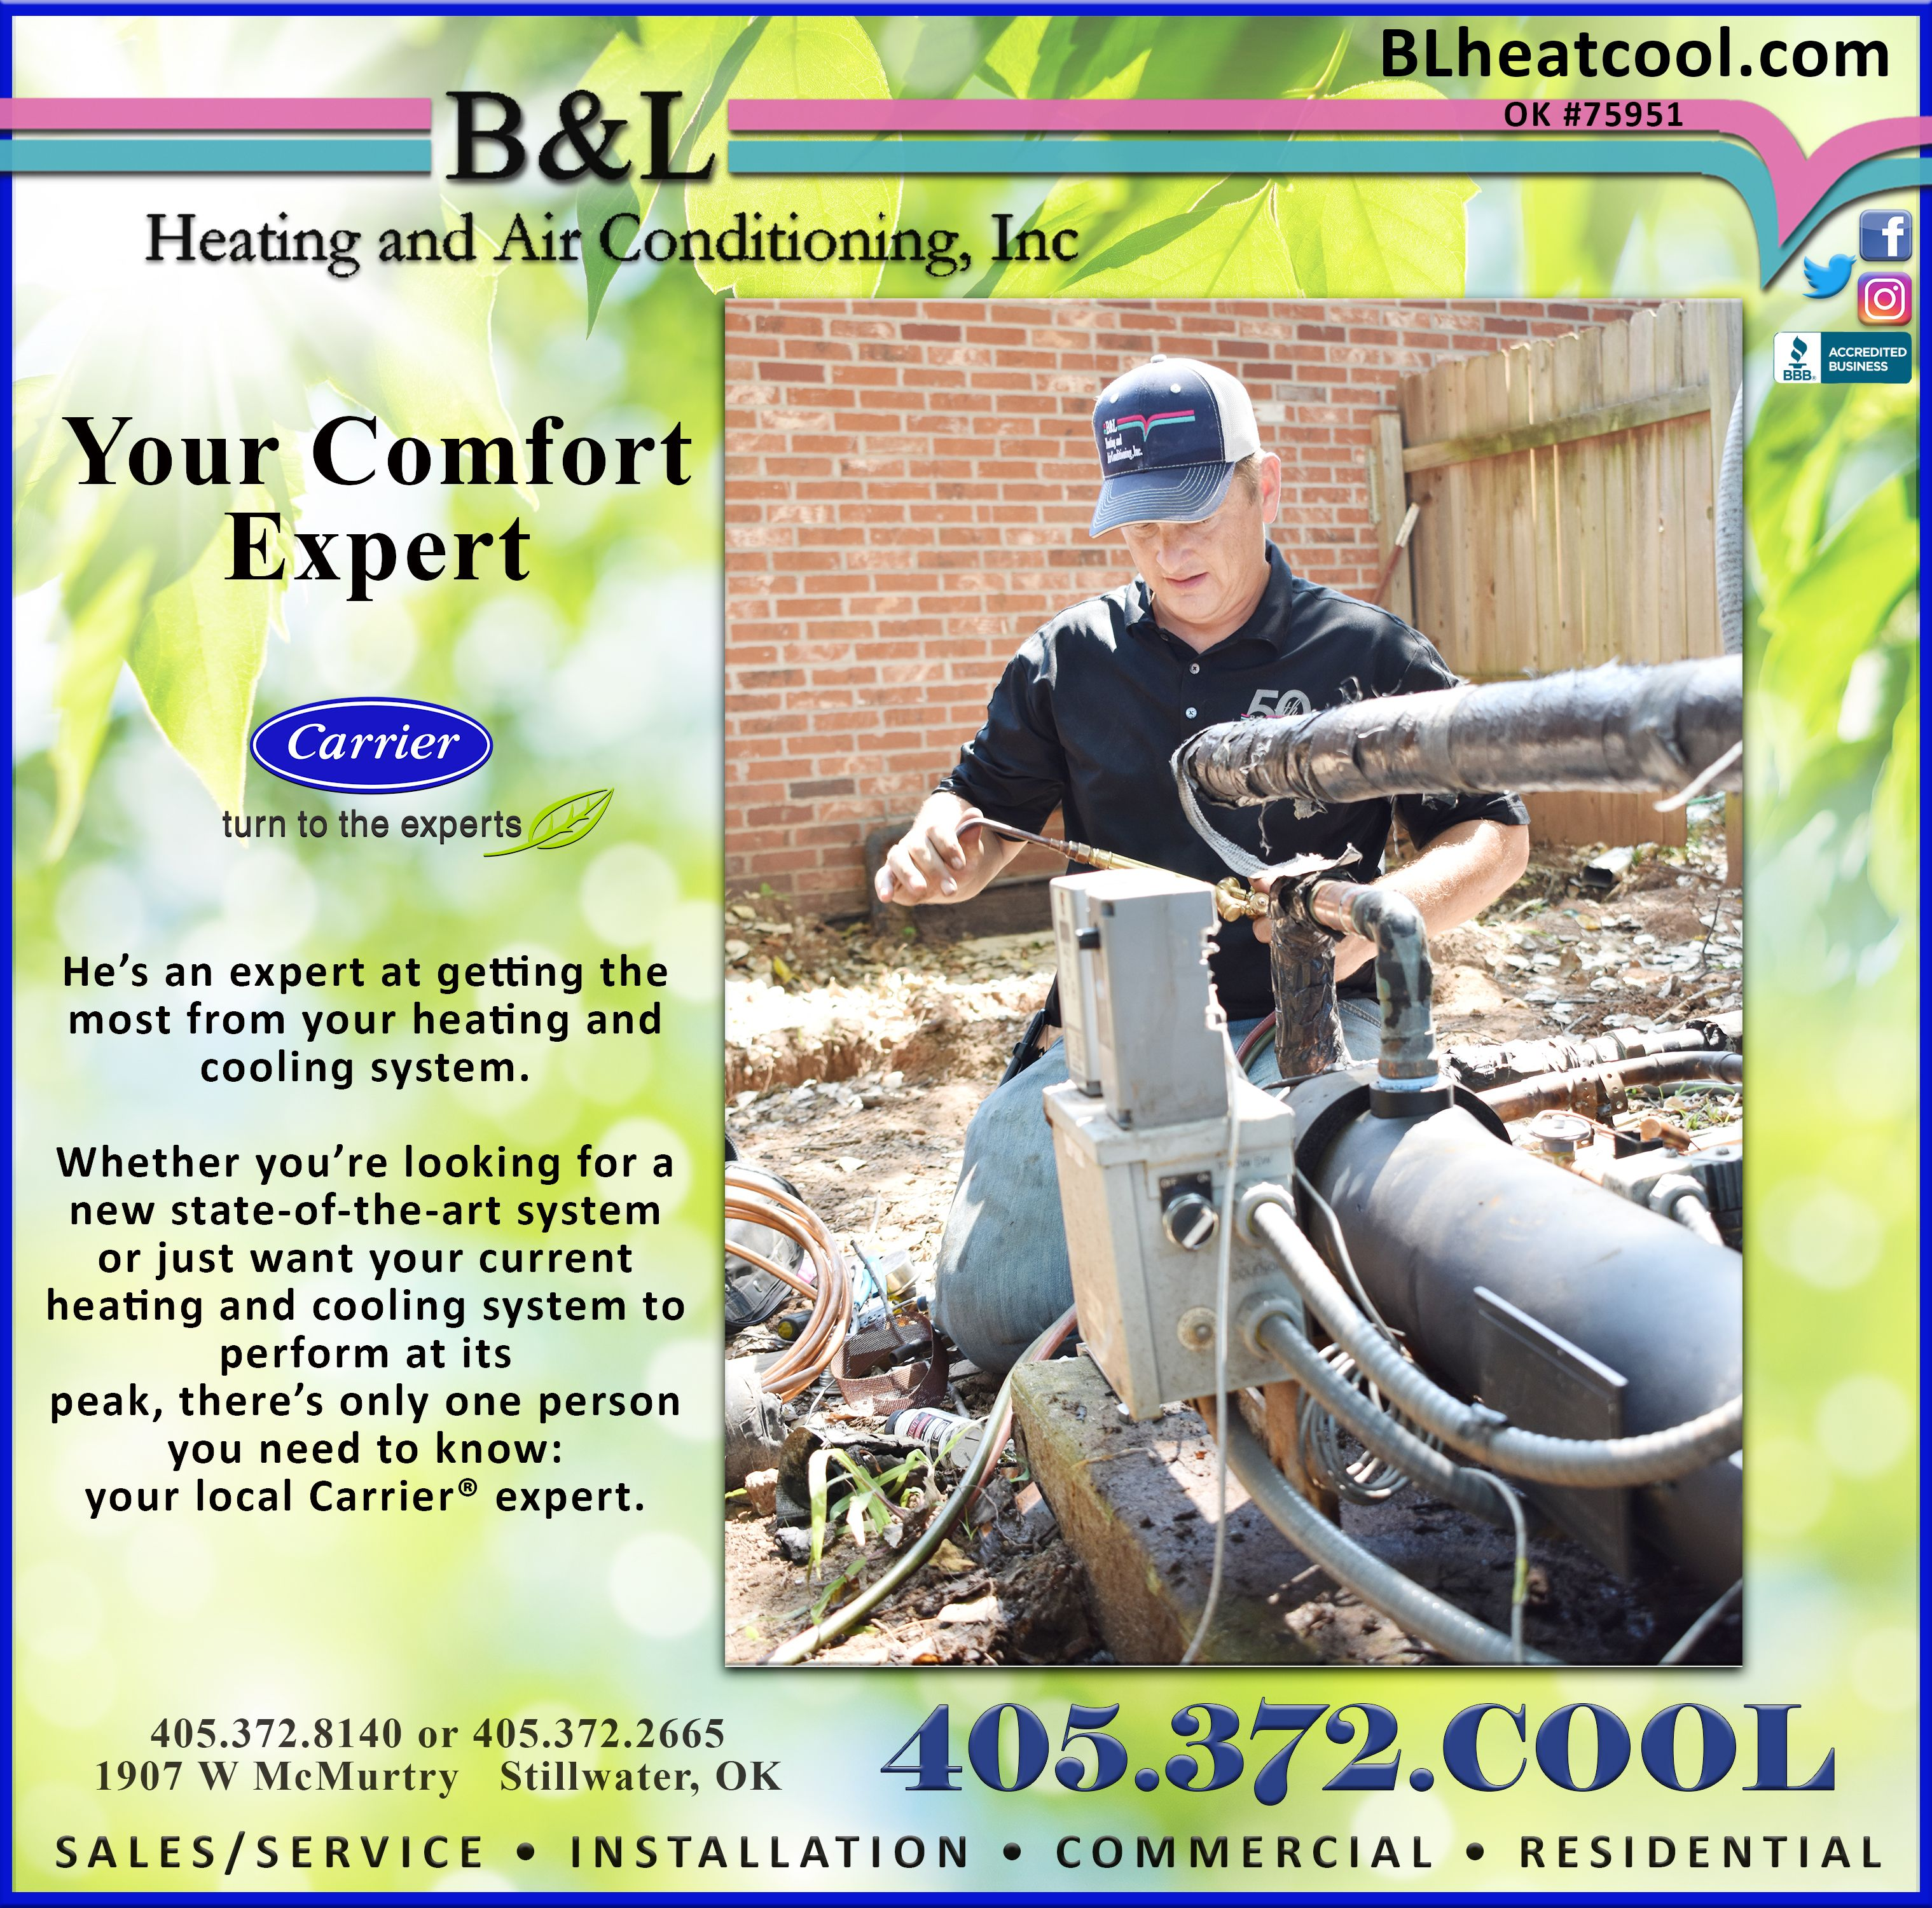 Pin by B&L Heating and Air Conditioni on B&L Ads Heating